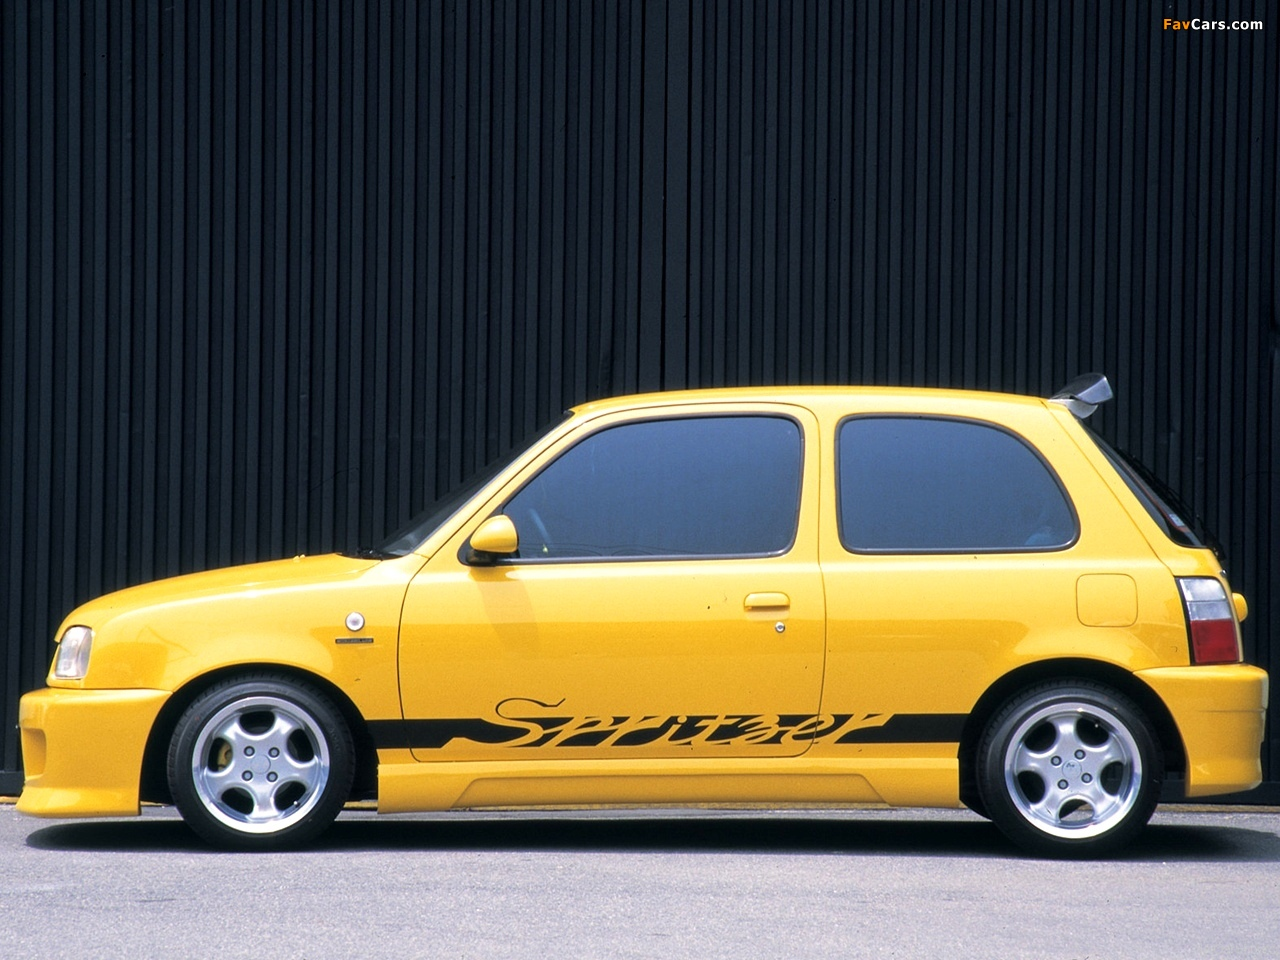 2003 wald nissan march image collections hd cars wallpaper wald nissan march 2003 vanachro vanachro Image collections